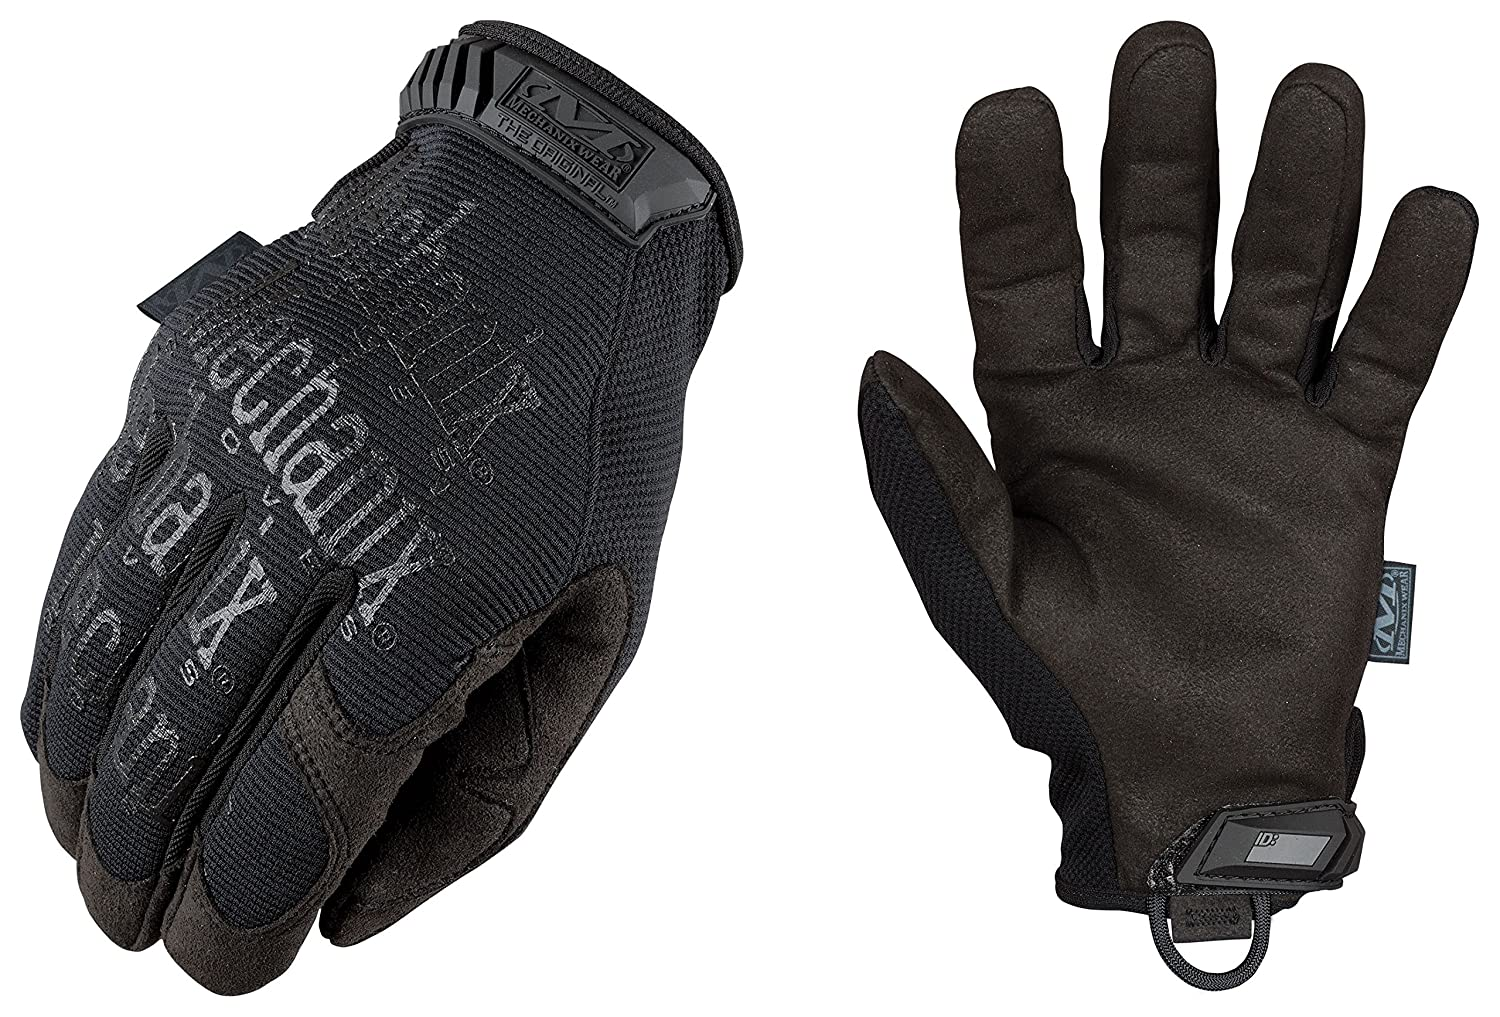 Mechanix gloves - not just for mechanics.